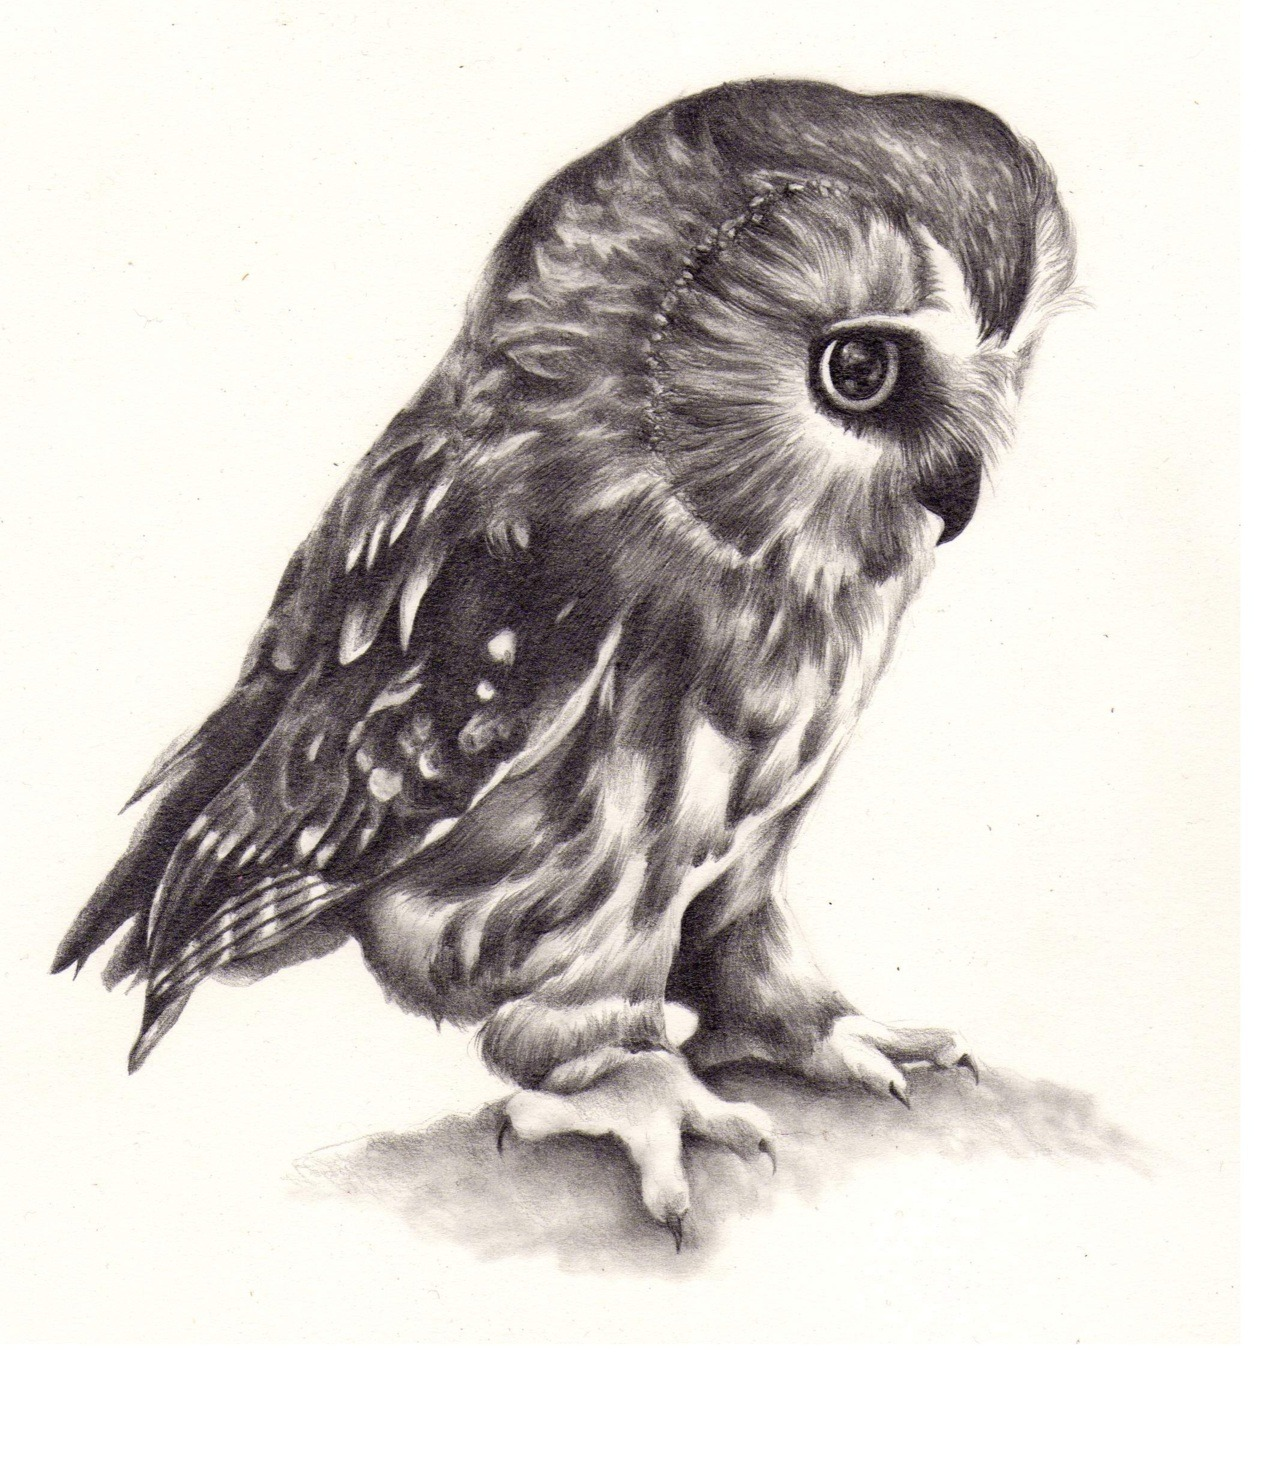 wryer:  I drew an owl I'm getting a load of drawings together to put up for sale in a shop in the foreseeable future and I figured generic wildlife drawings will sell, so I'll be doing a few more like this soon